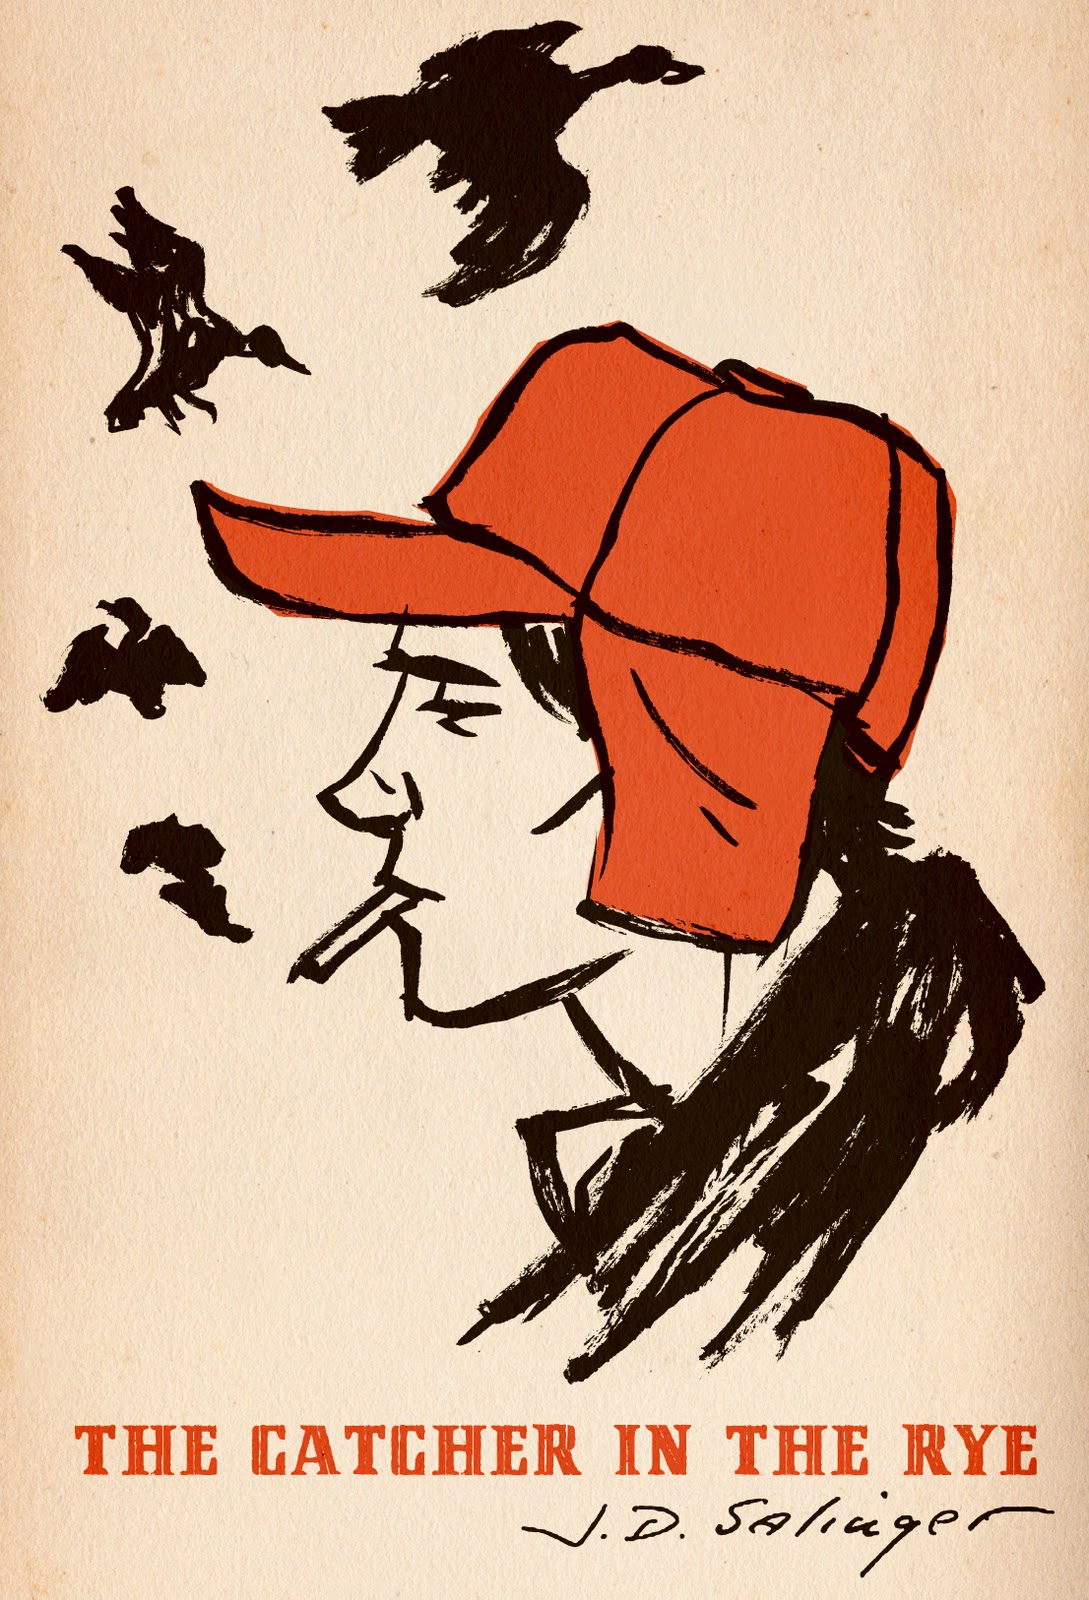 an analysis of holdens view about the world in the catcher in the rye by j d salinger Download the app and start listening to the catcher in the rye: by jd salinger - summary, review & analysis today this summary for jd salinger's the catcher in the rye is just the use the detailed character analyses to make connections between these themes and the people in holden's.